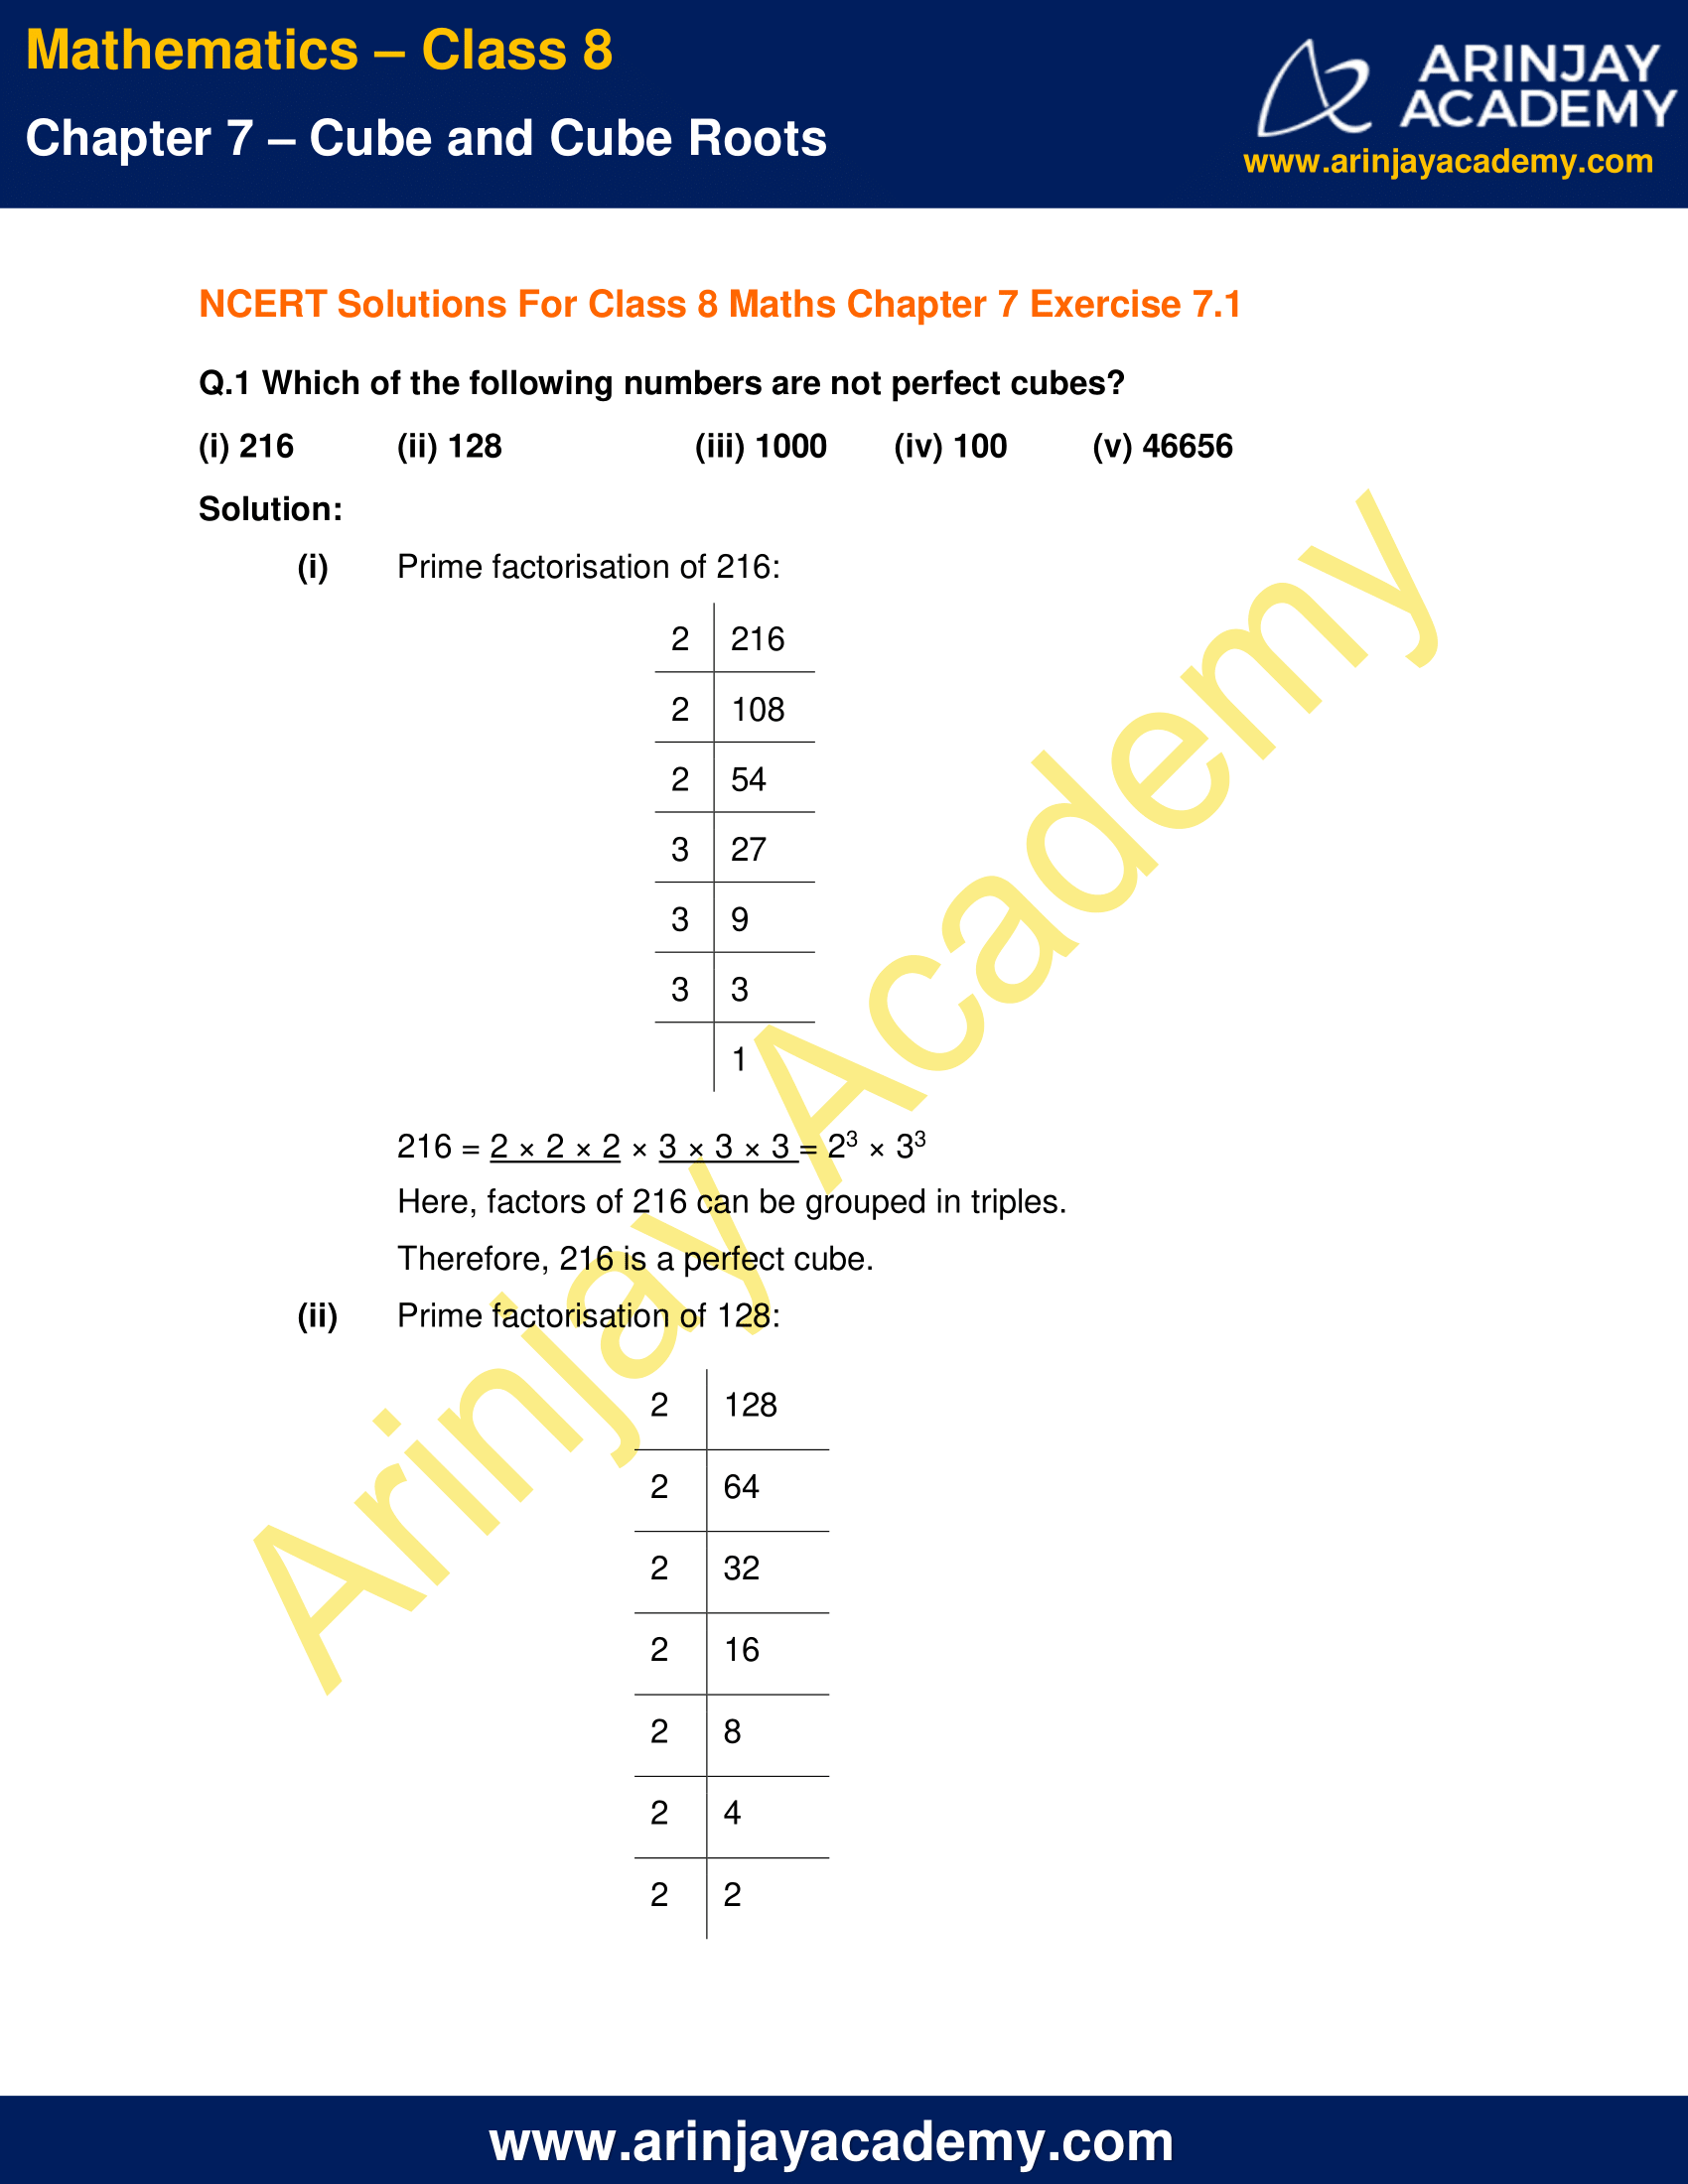 NCERT Solutions for Class 8 Maths Chapter 7 Exercise 7.1 image 1